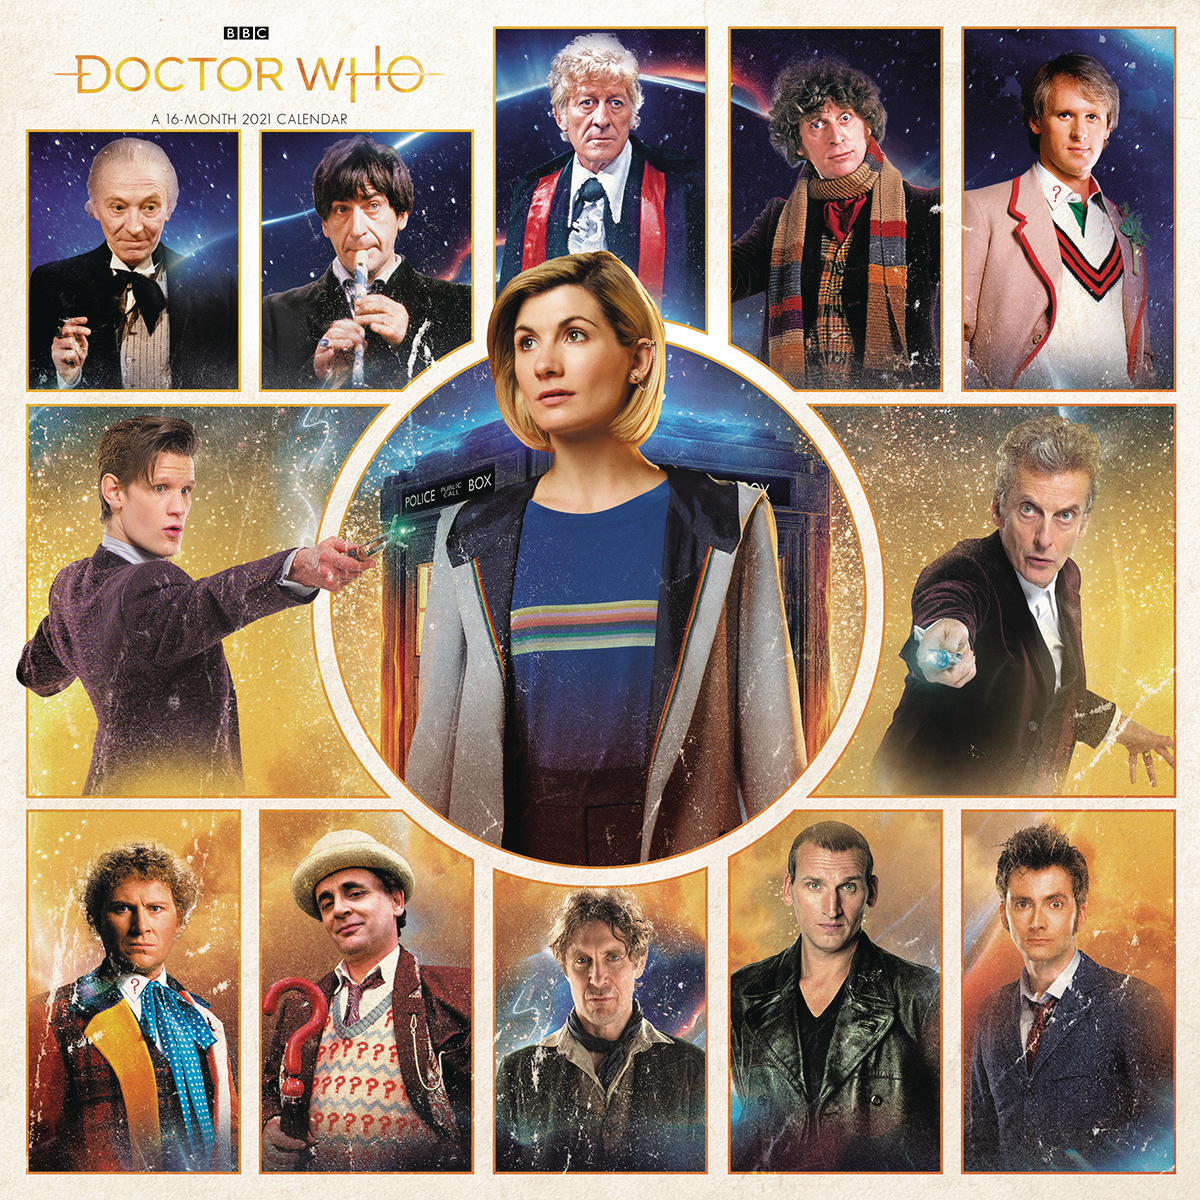 DOCTOR WHO 2021 WALL CALENDAR